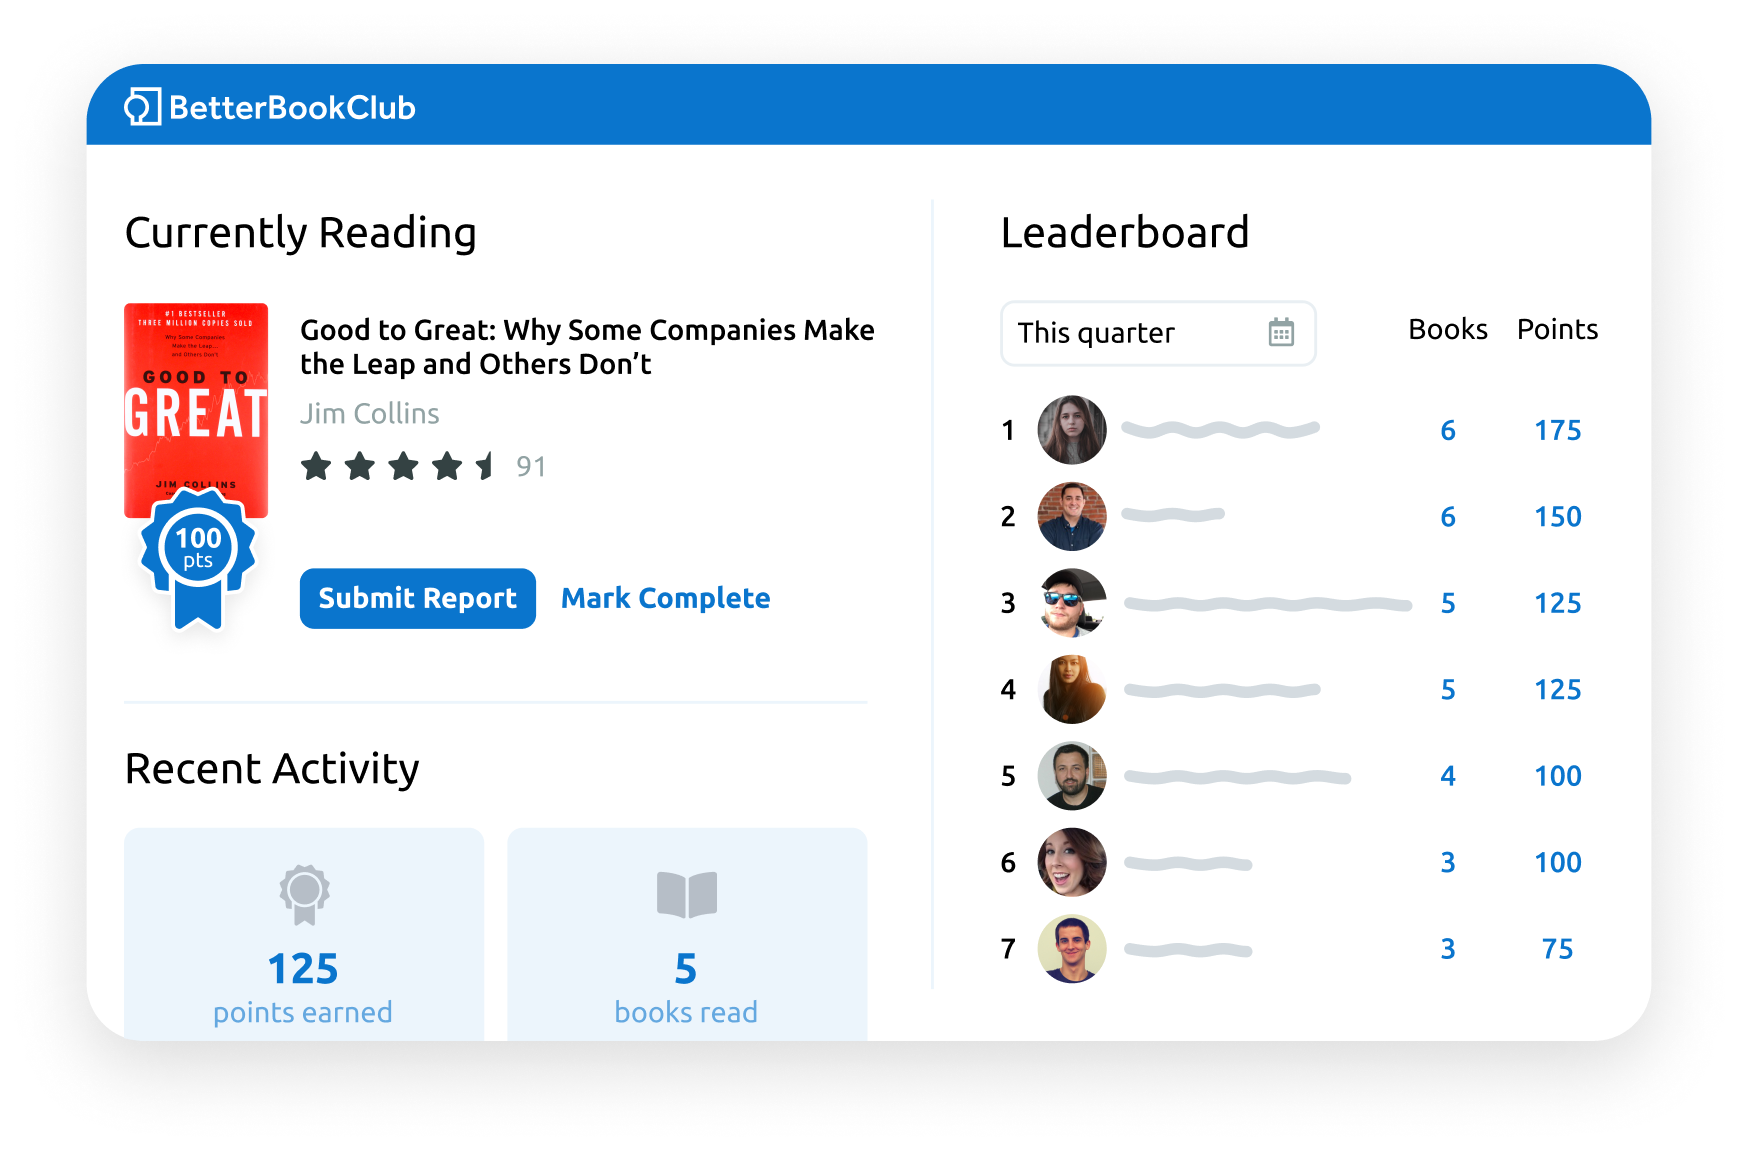 betterbookclub app overview